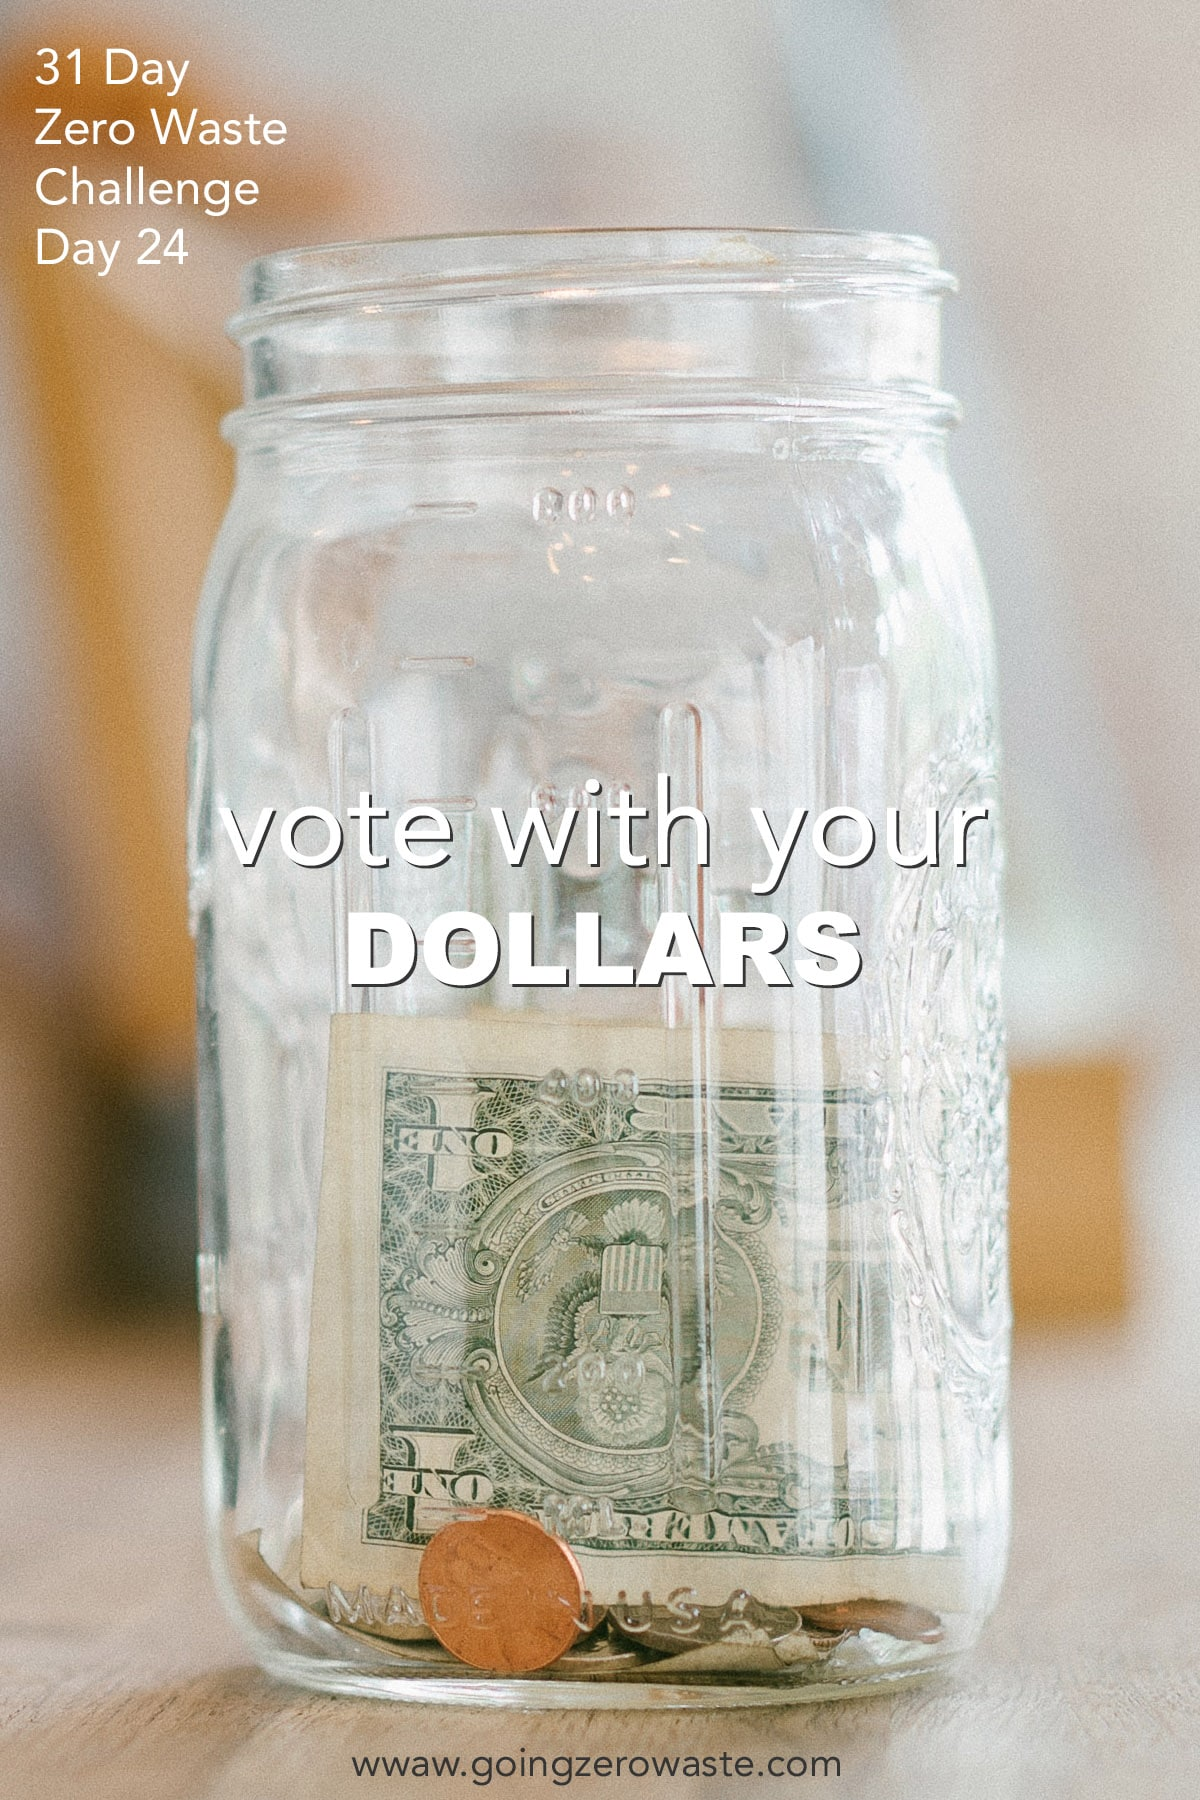 Vote With Your Dollars - Day 24 of the Zero Waste Challenge